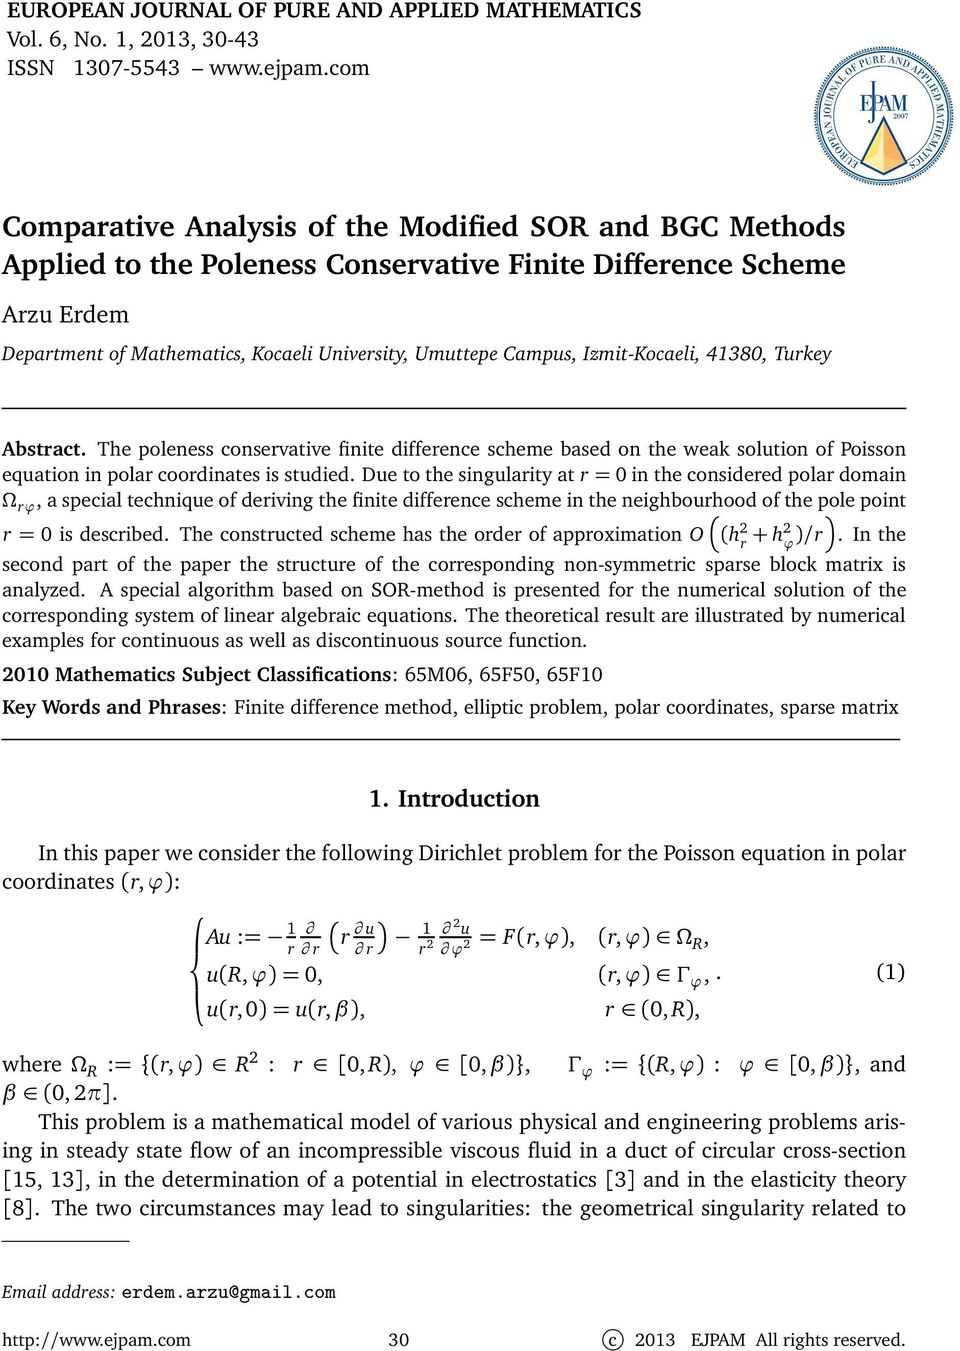 Comparative Analysis of the Modified SOR and BGC Methods